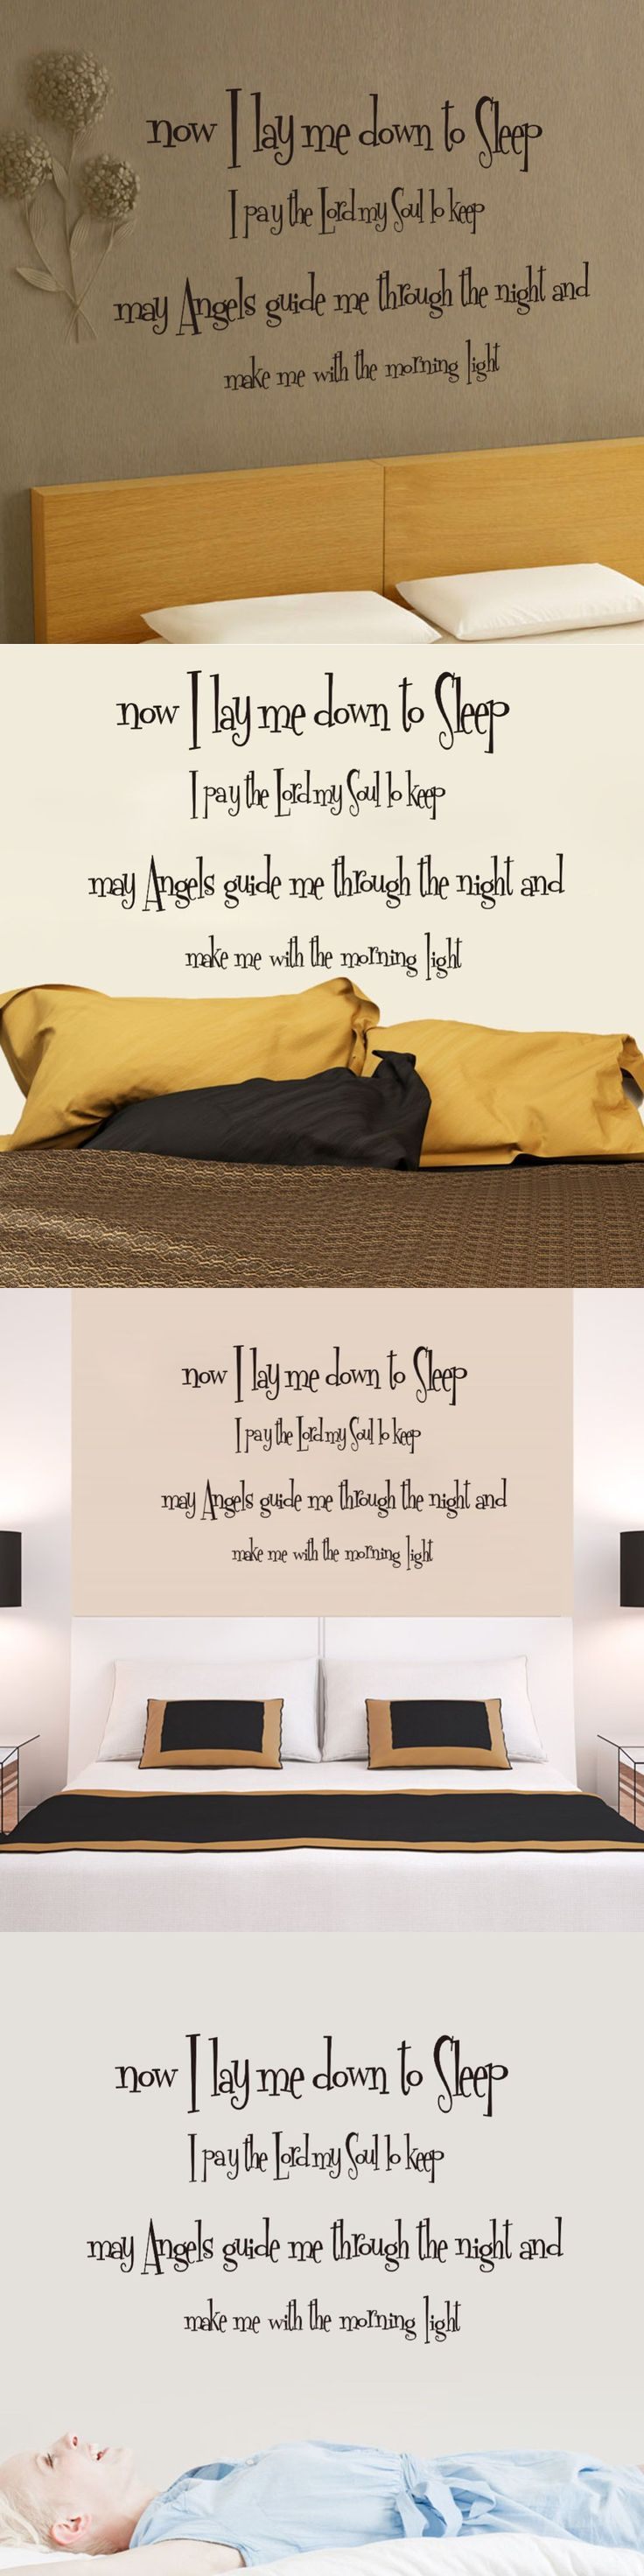 Now i lay me down to sleep wall decal - 2016 Vintage Home Decor Now I Lay Me Down To Sleep Quote Wall Decals Sofa And Bedroom Background Stickers Removable Vinyl Murals